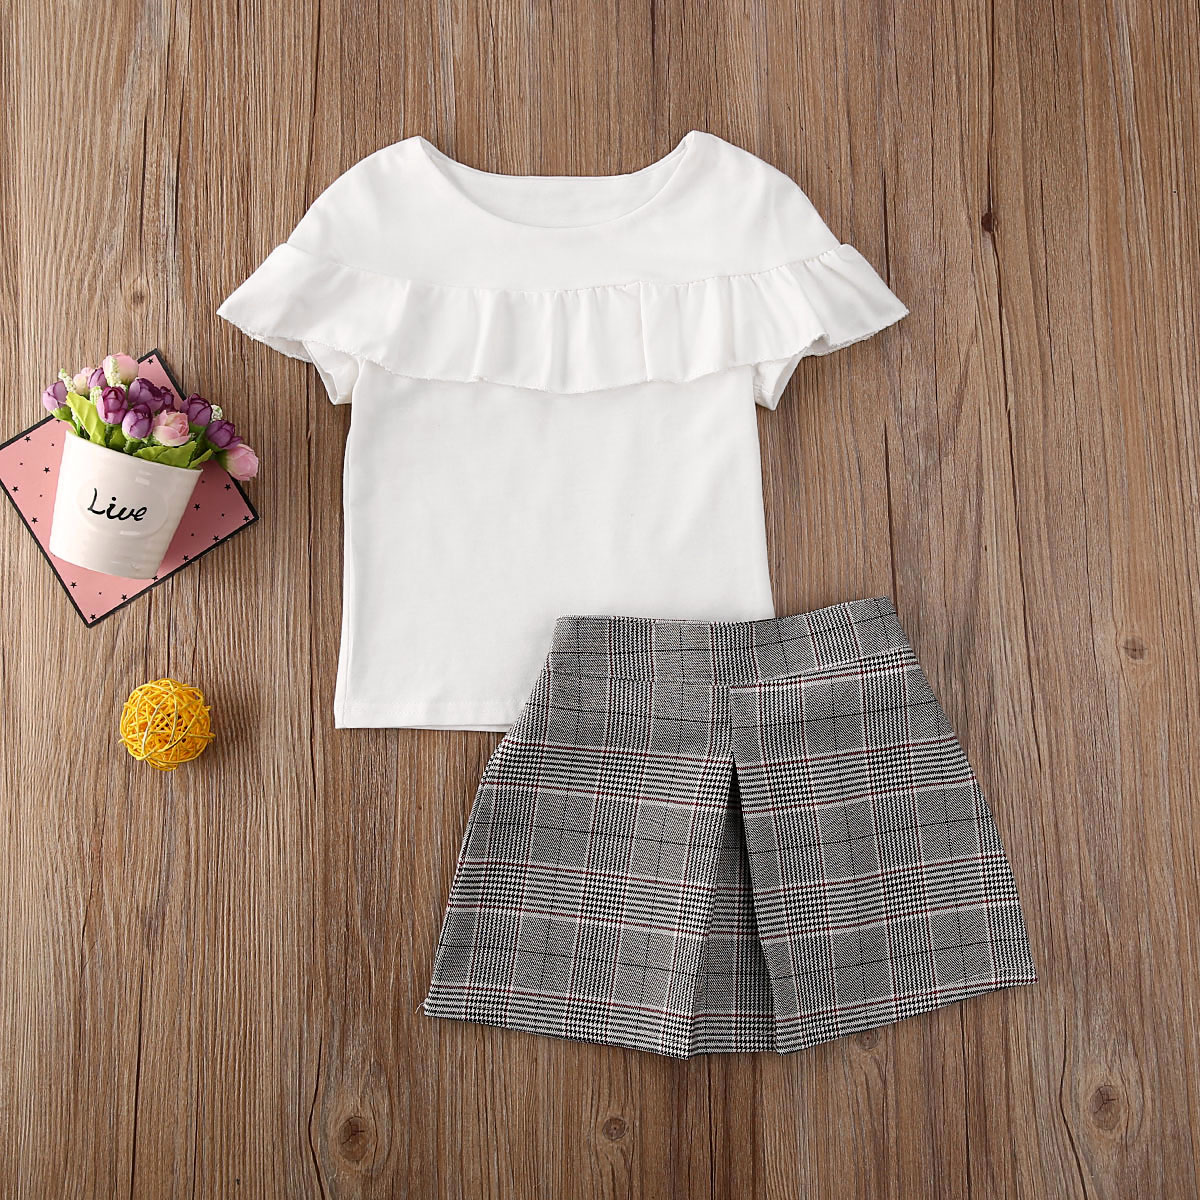 Pudcoco Newest Fashion Toddler Baby Girl Clothes Solid Color Ruffle Tops Plaids Mini Skirt 2Pcs Outfits Cotton Clothes